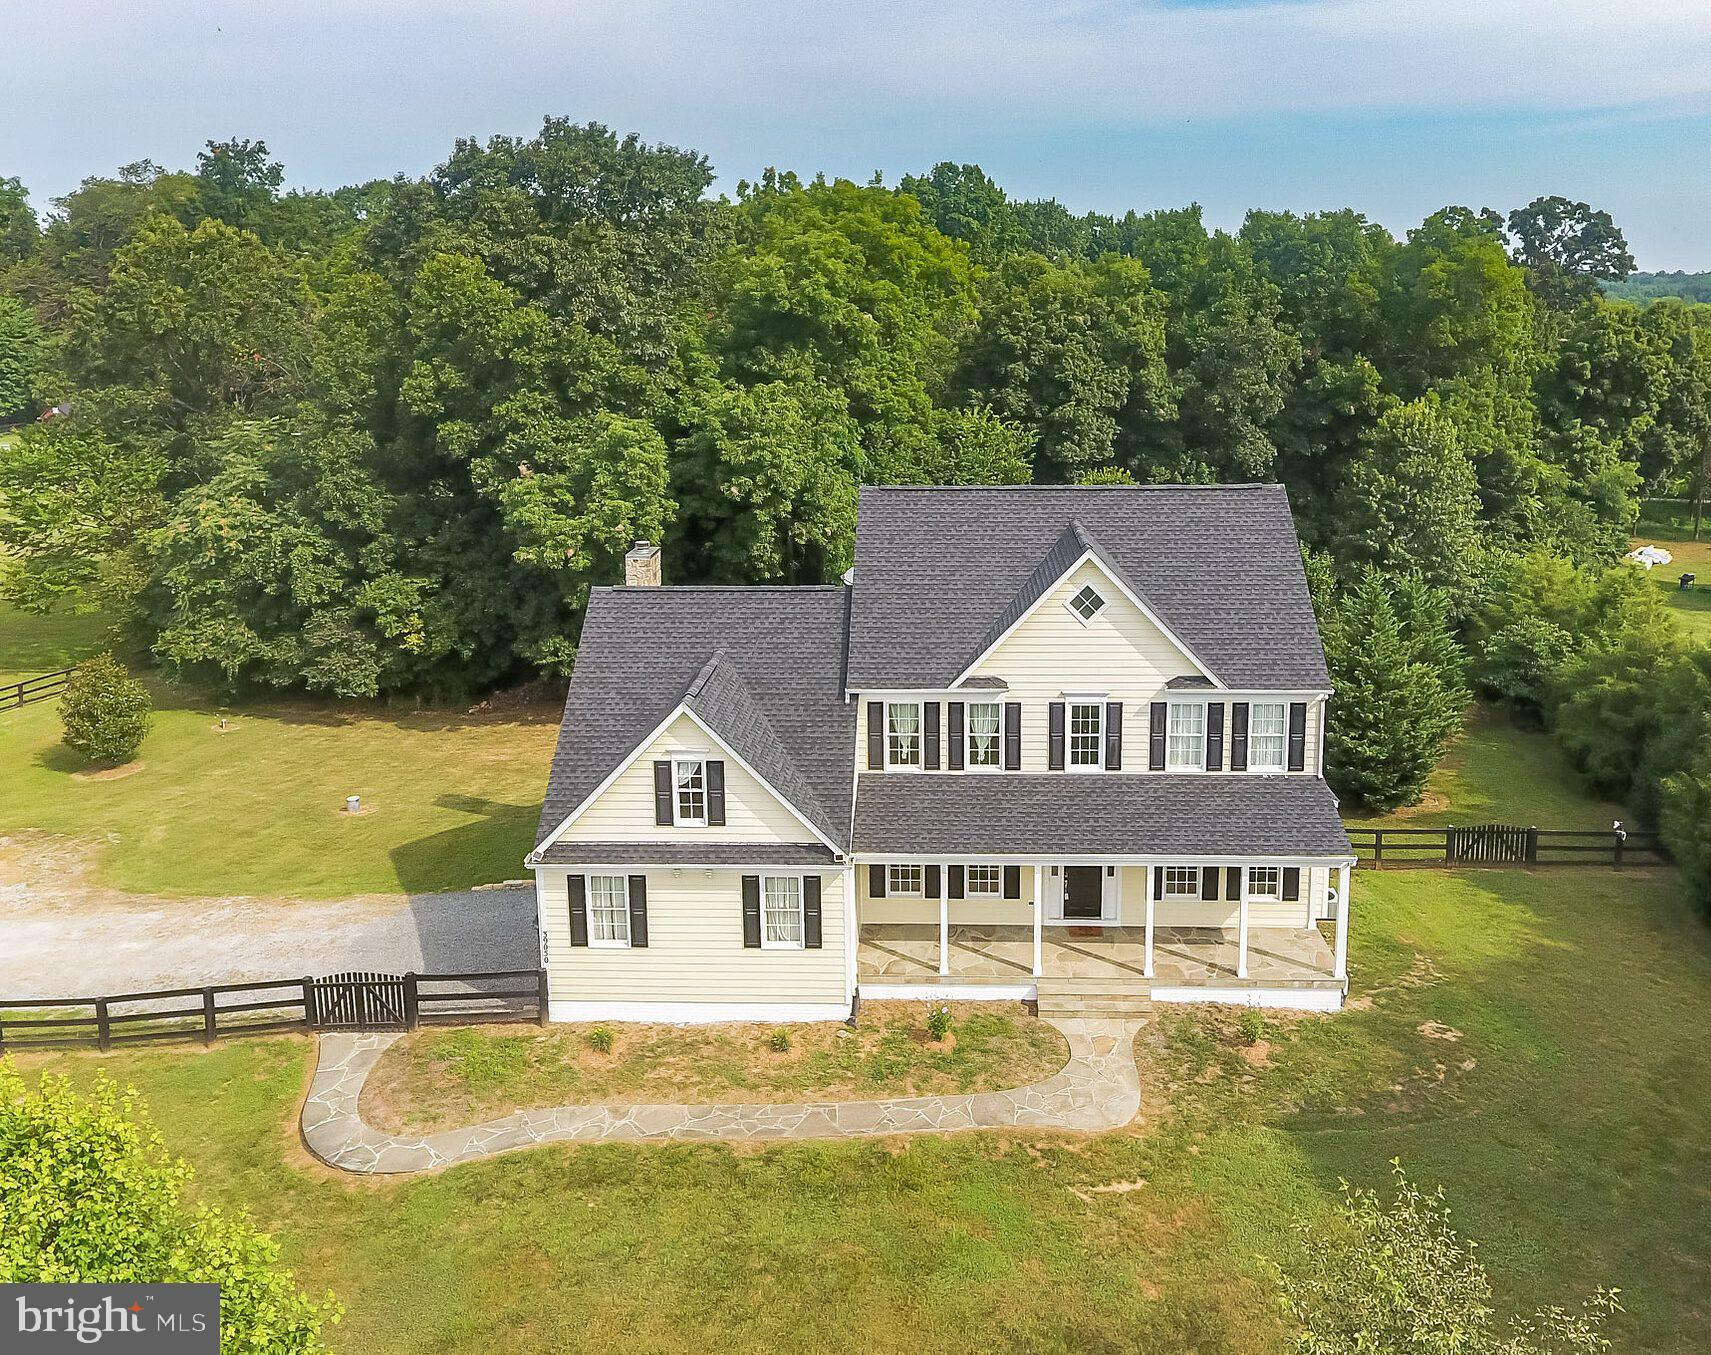 39050 JOHN WOLFORD ROAD, WATERFORD, VA 20197